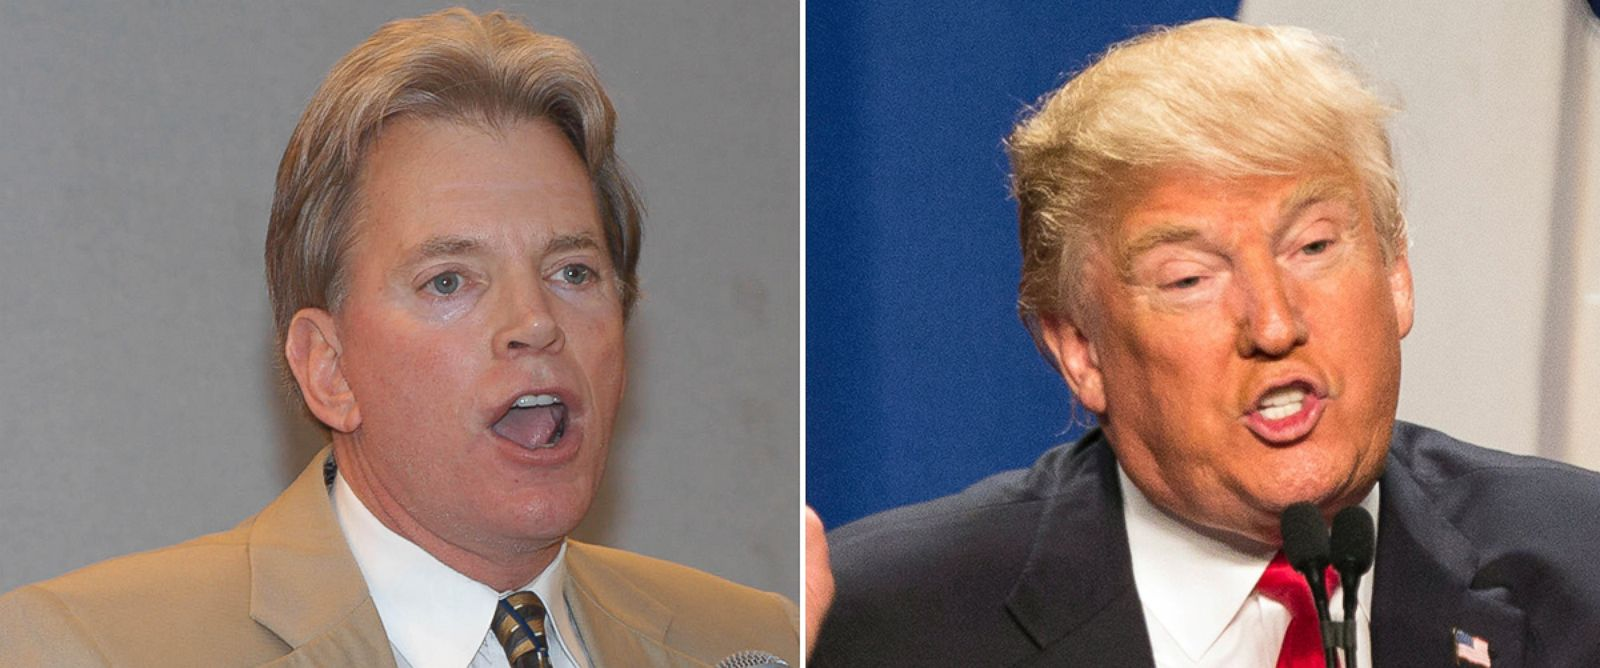 PHOTO: Former Ku Klux Klan leader David Duke speaks to supporters at a reception, May 29, 2004, in Kenner, Louisiana. Donald Trump speaks during a campaign event at the convention center in Fort Worth, Texas, Feb. 26, 2016.